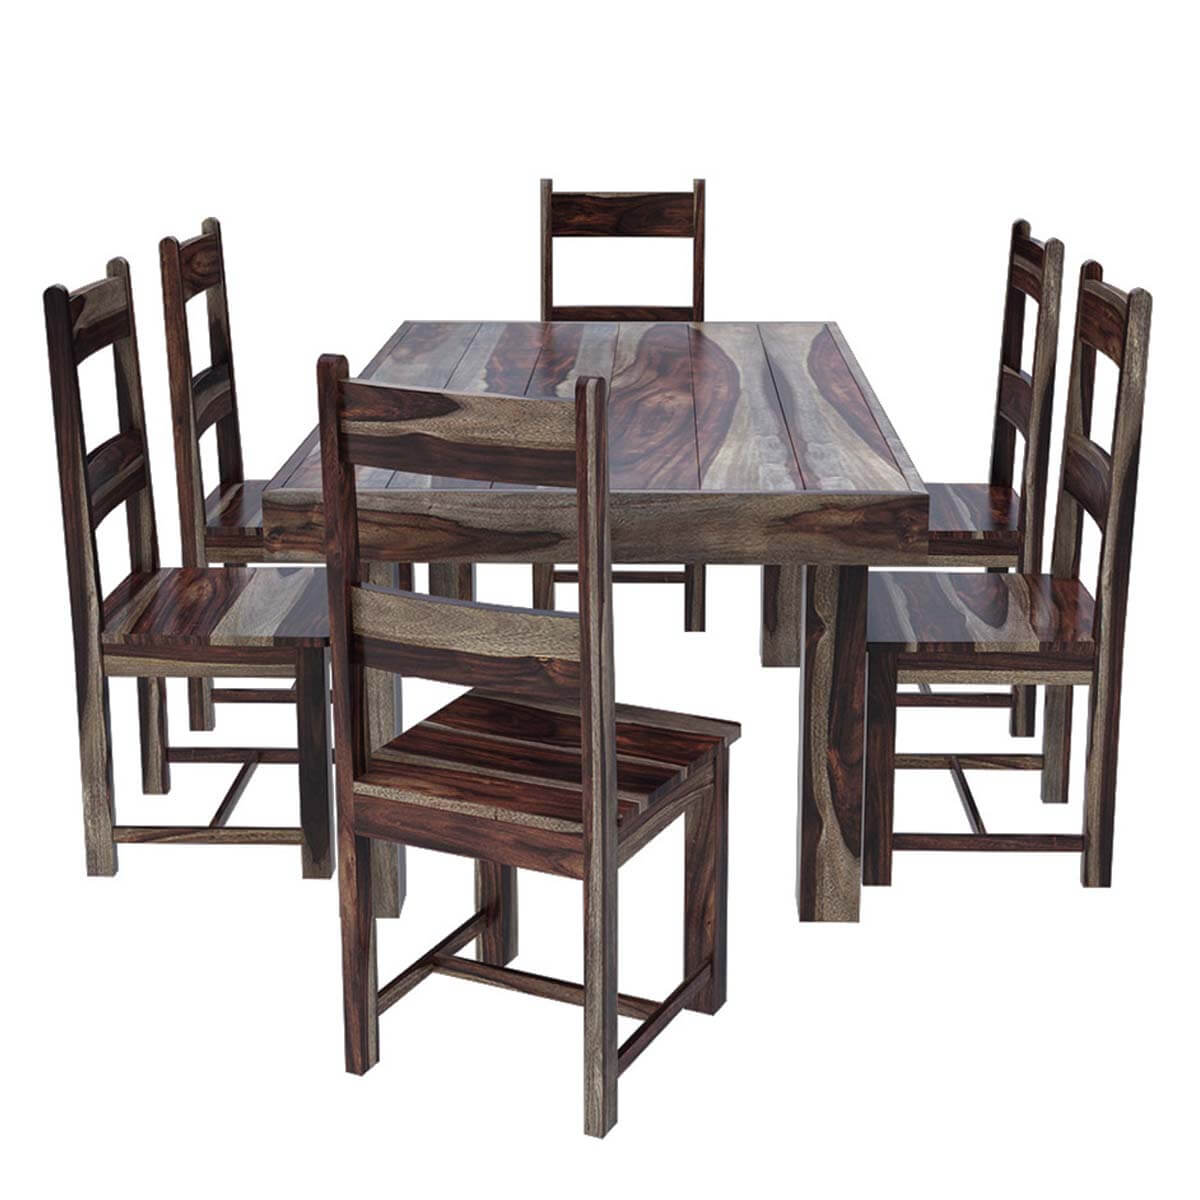 Frisco modern solid wood casual rustic dining room table and chair set Wooden dining table and chairs